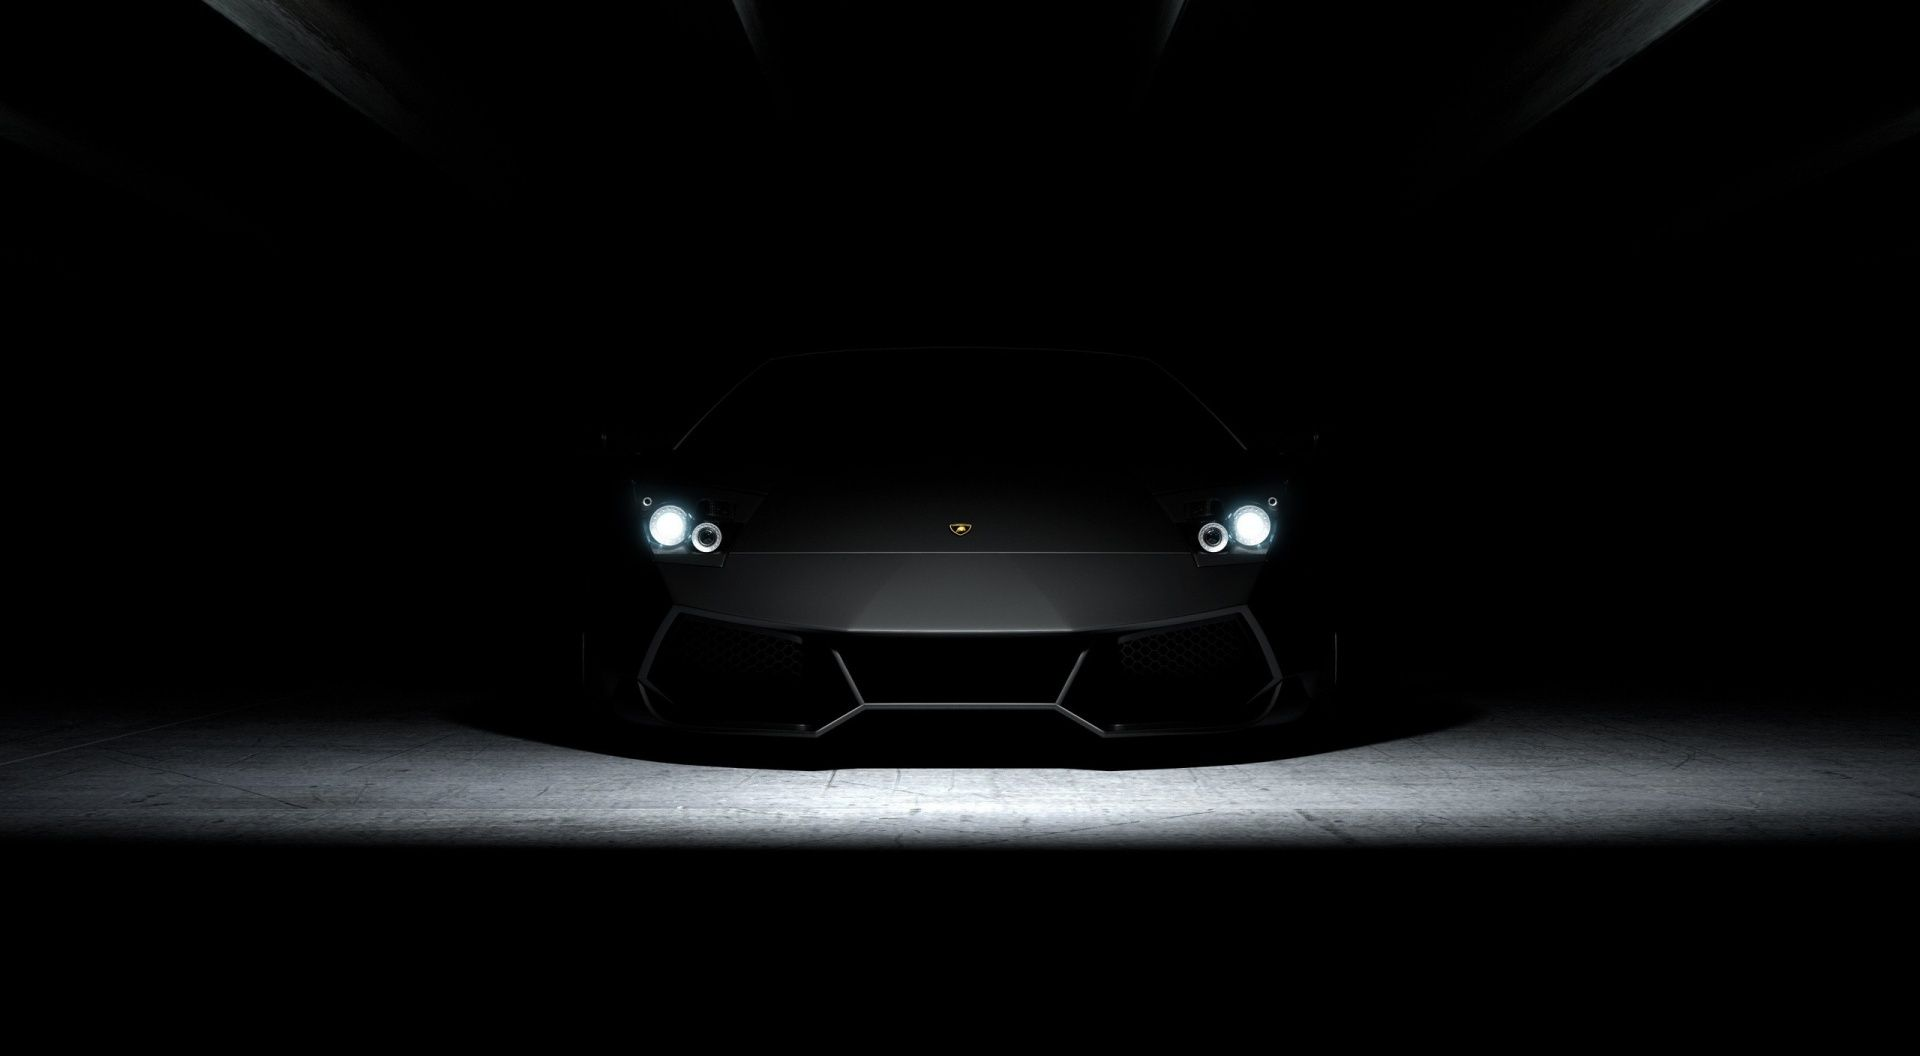 Dark Wallpaper Car Hd dark wallpapers, Dark wallpaper